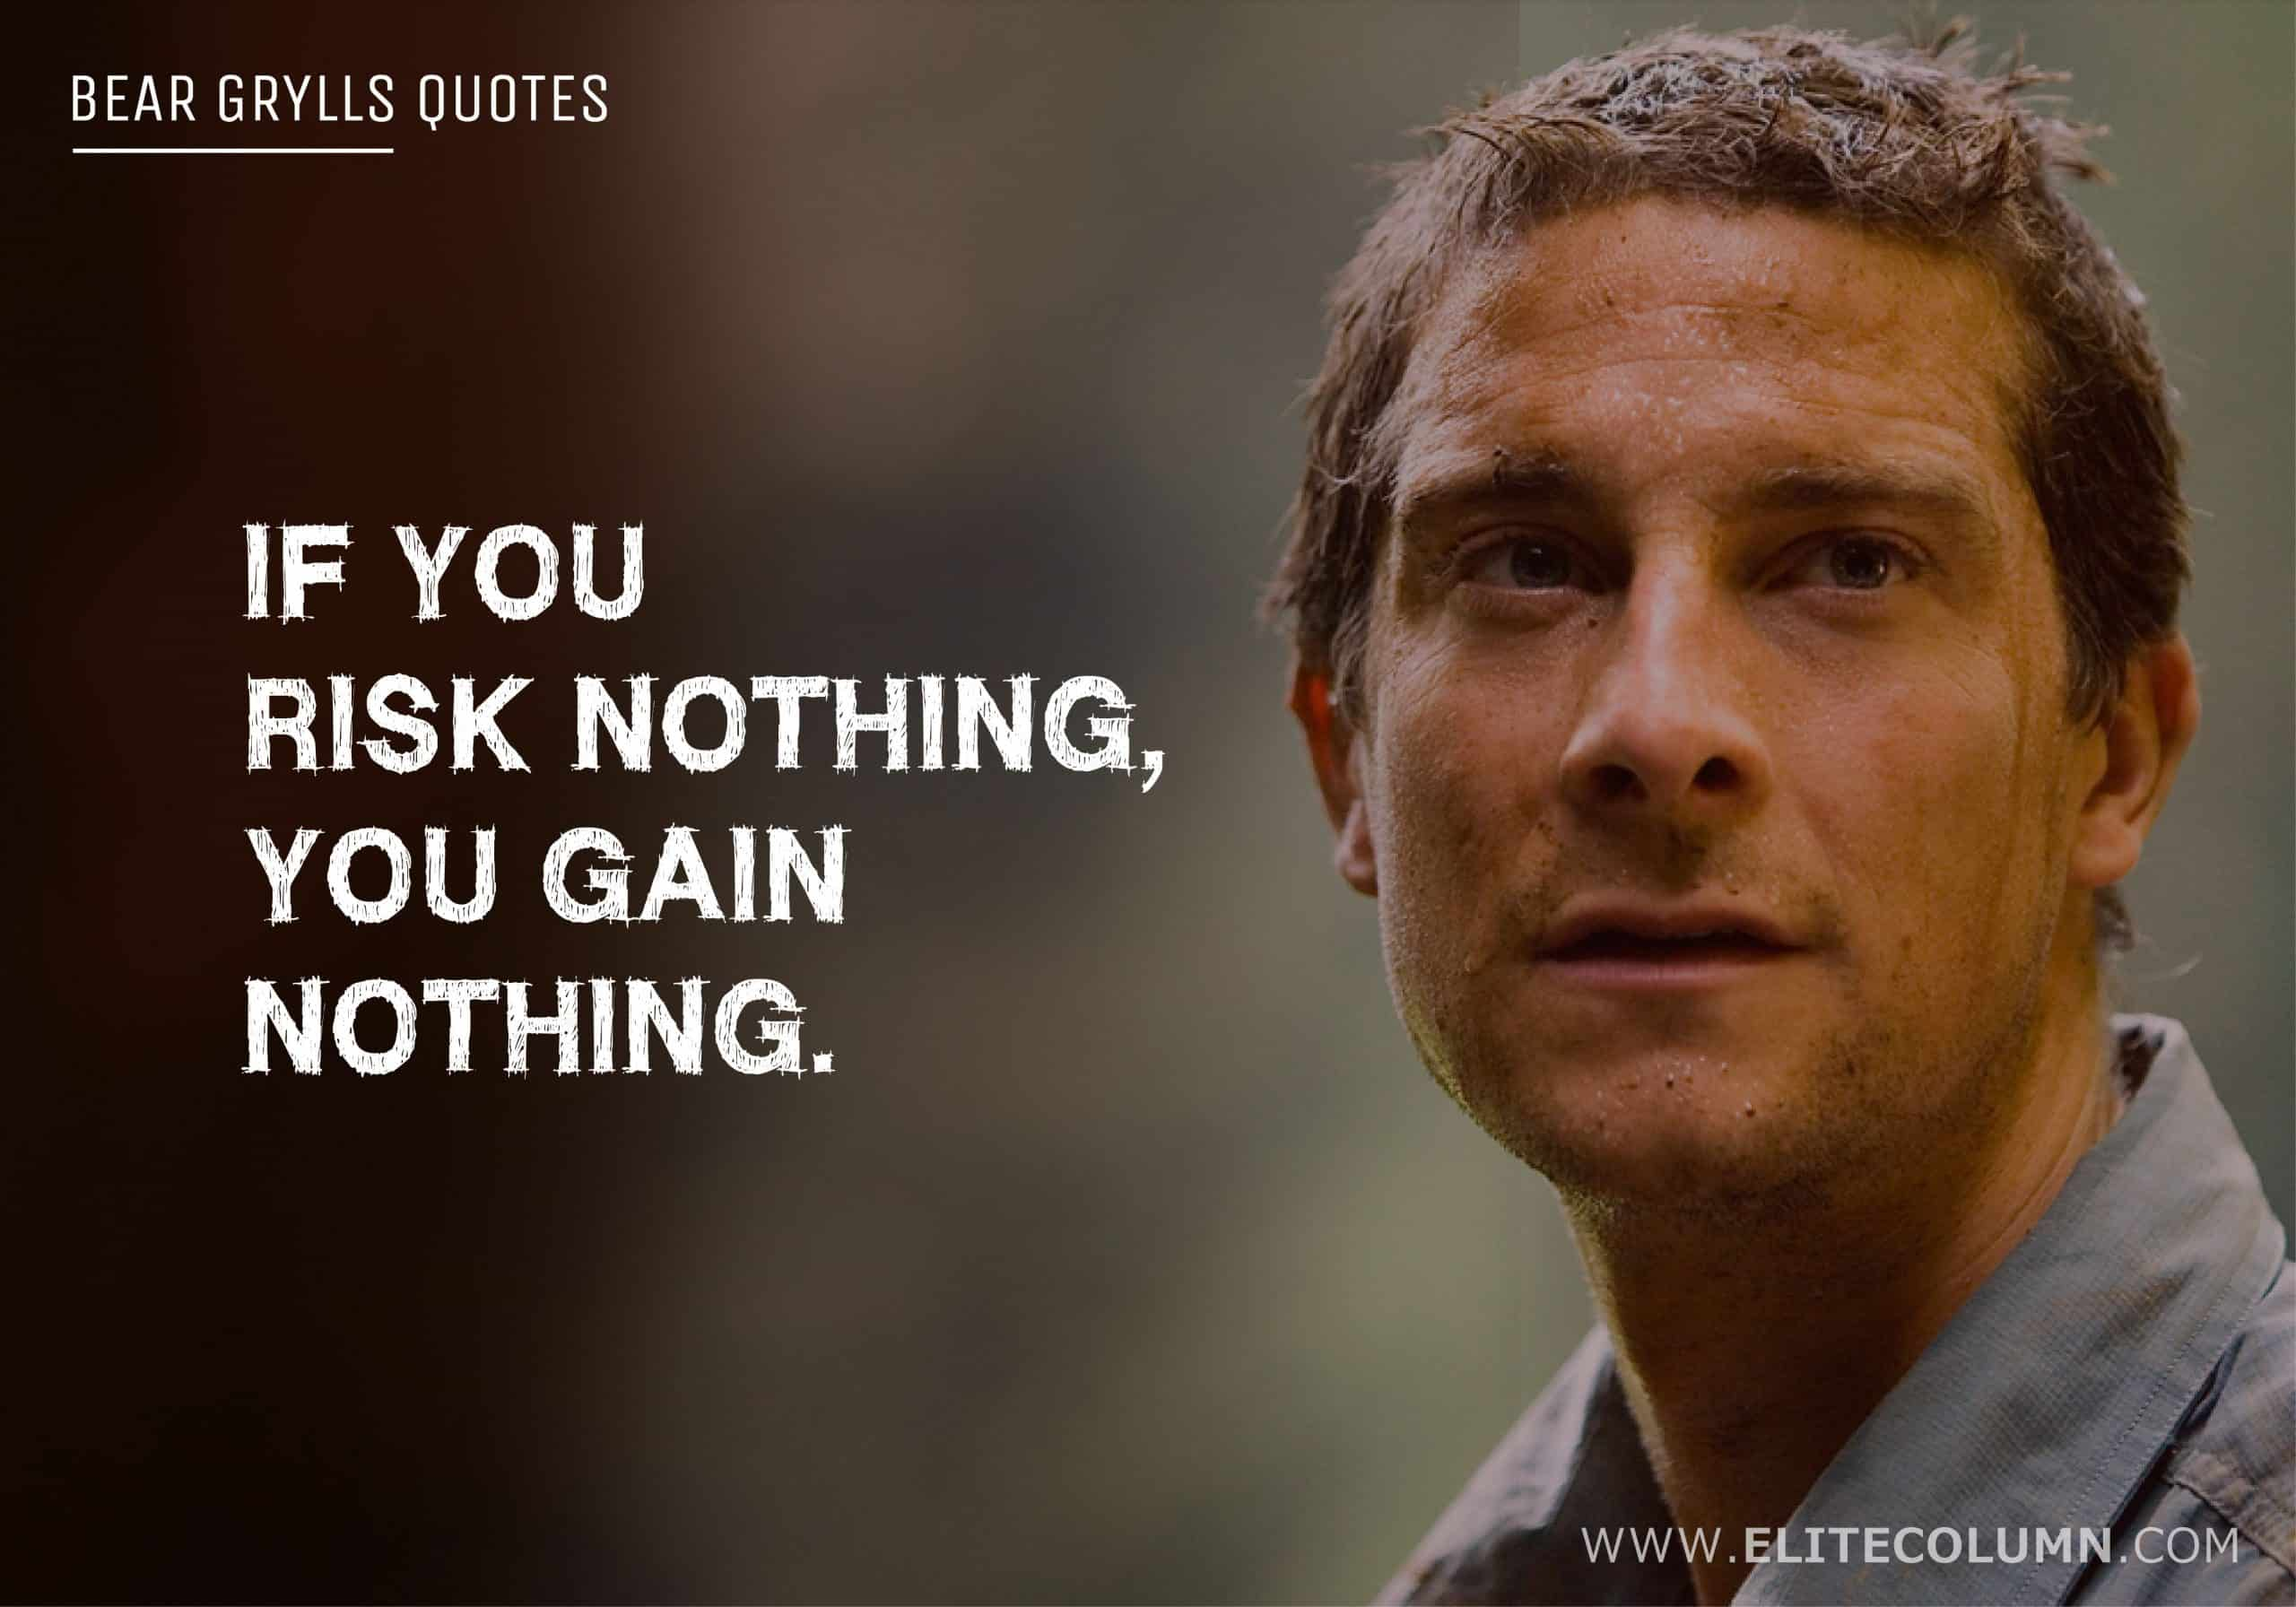 Bear Grylls Quotes (6)